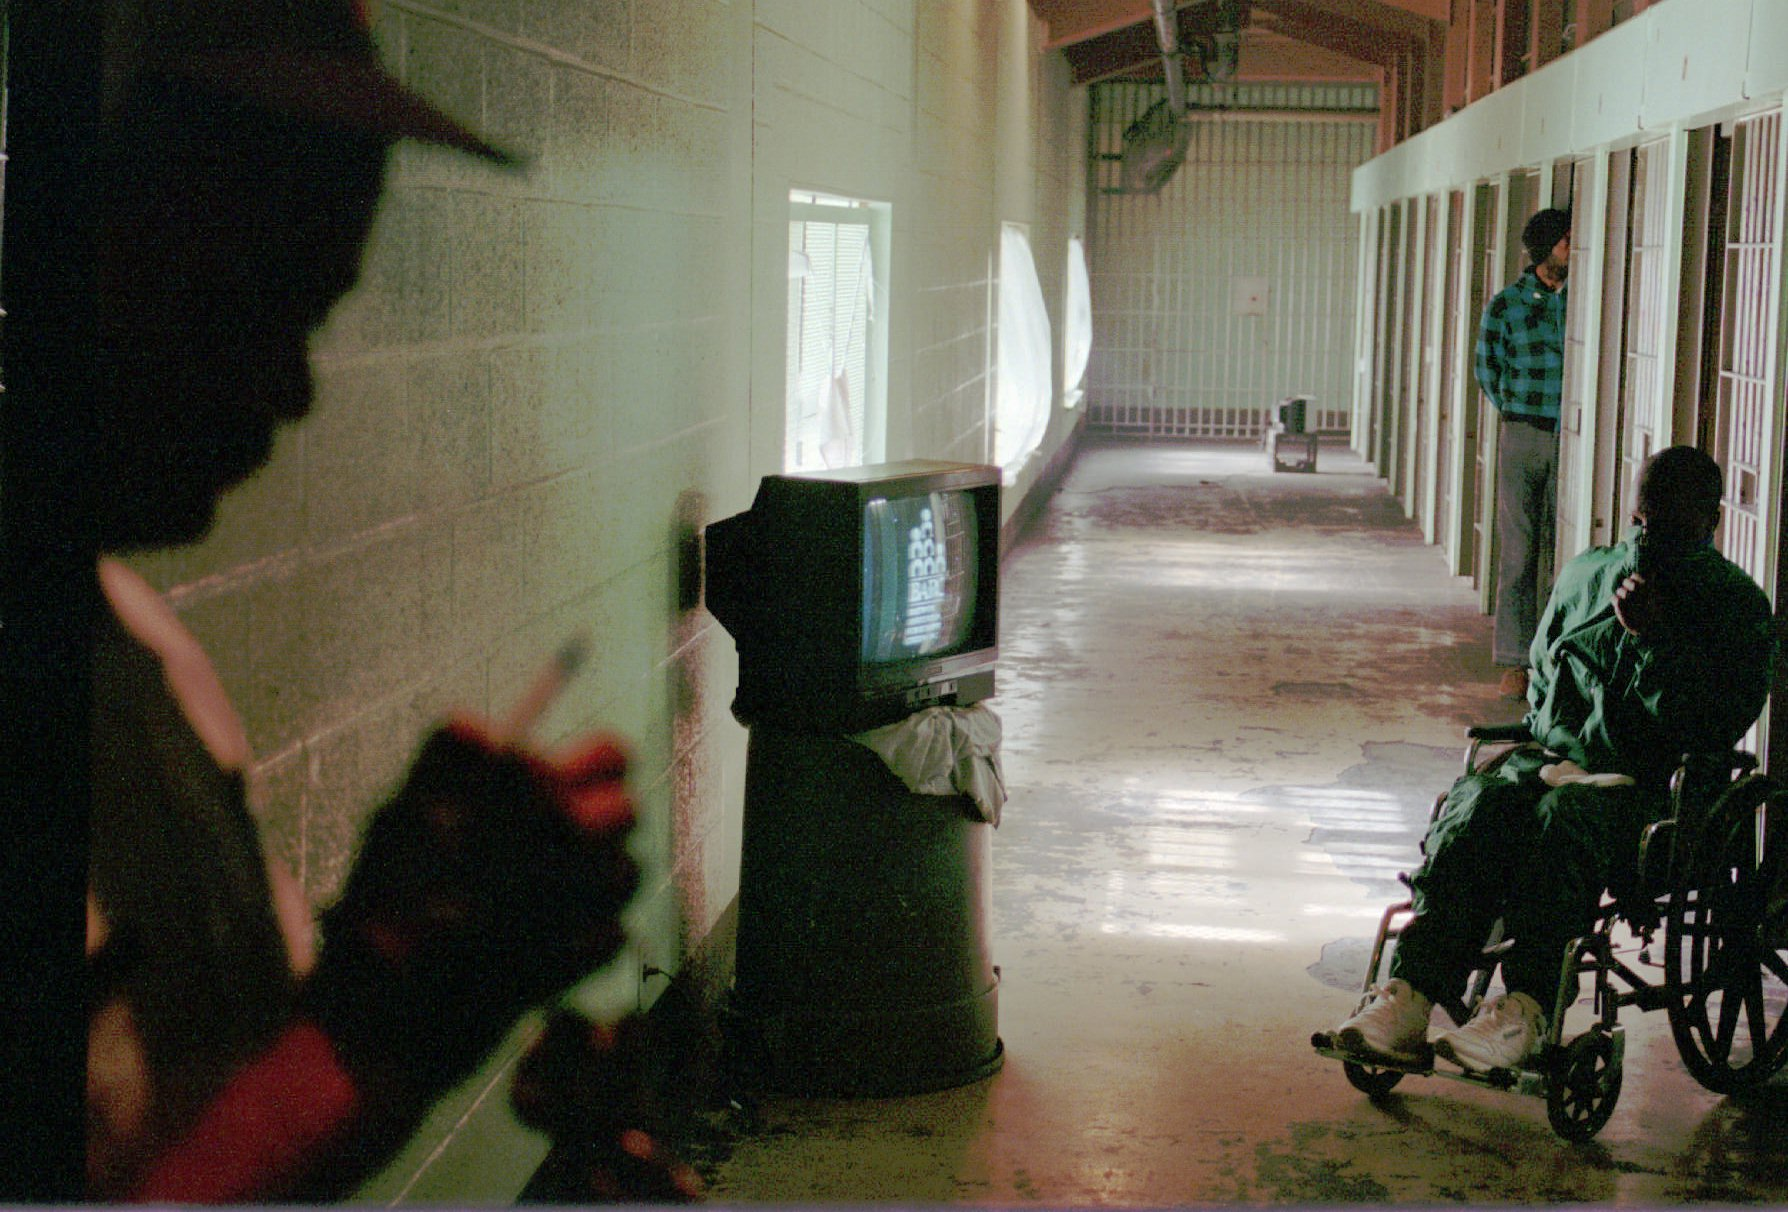 correctional officers and stress affects them and ways deal How correctional employers can reduce corrections fatigue in their correctional employees should know that a support system is in place to assist them with corrections fatigue, stress may encounter and how it may affect them over time although correctional workers are ultimately.